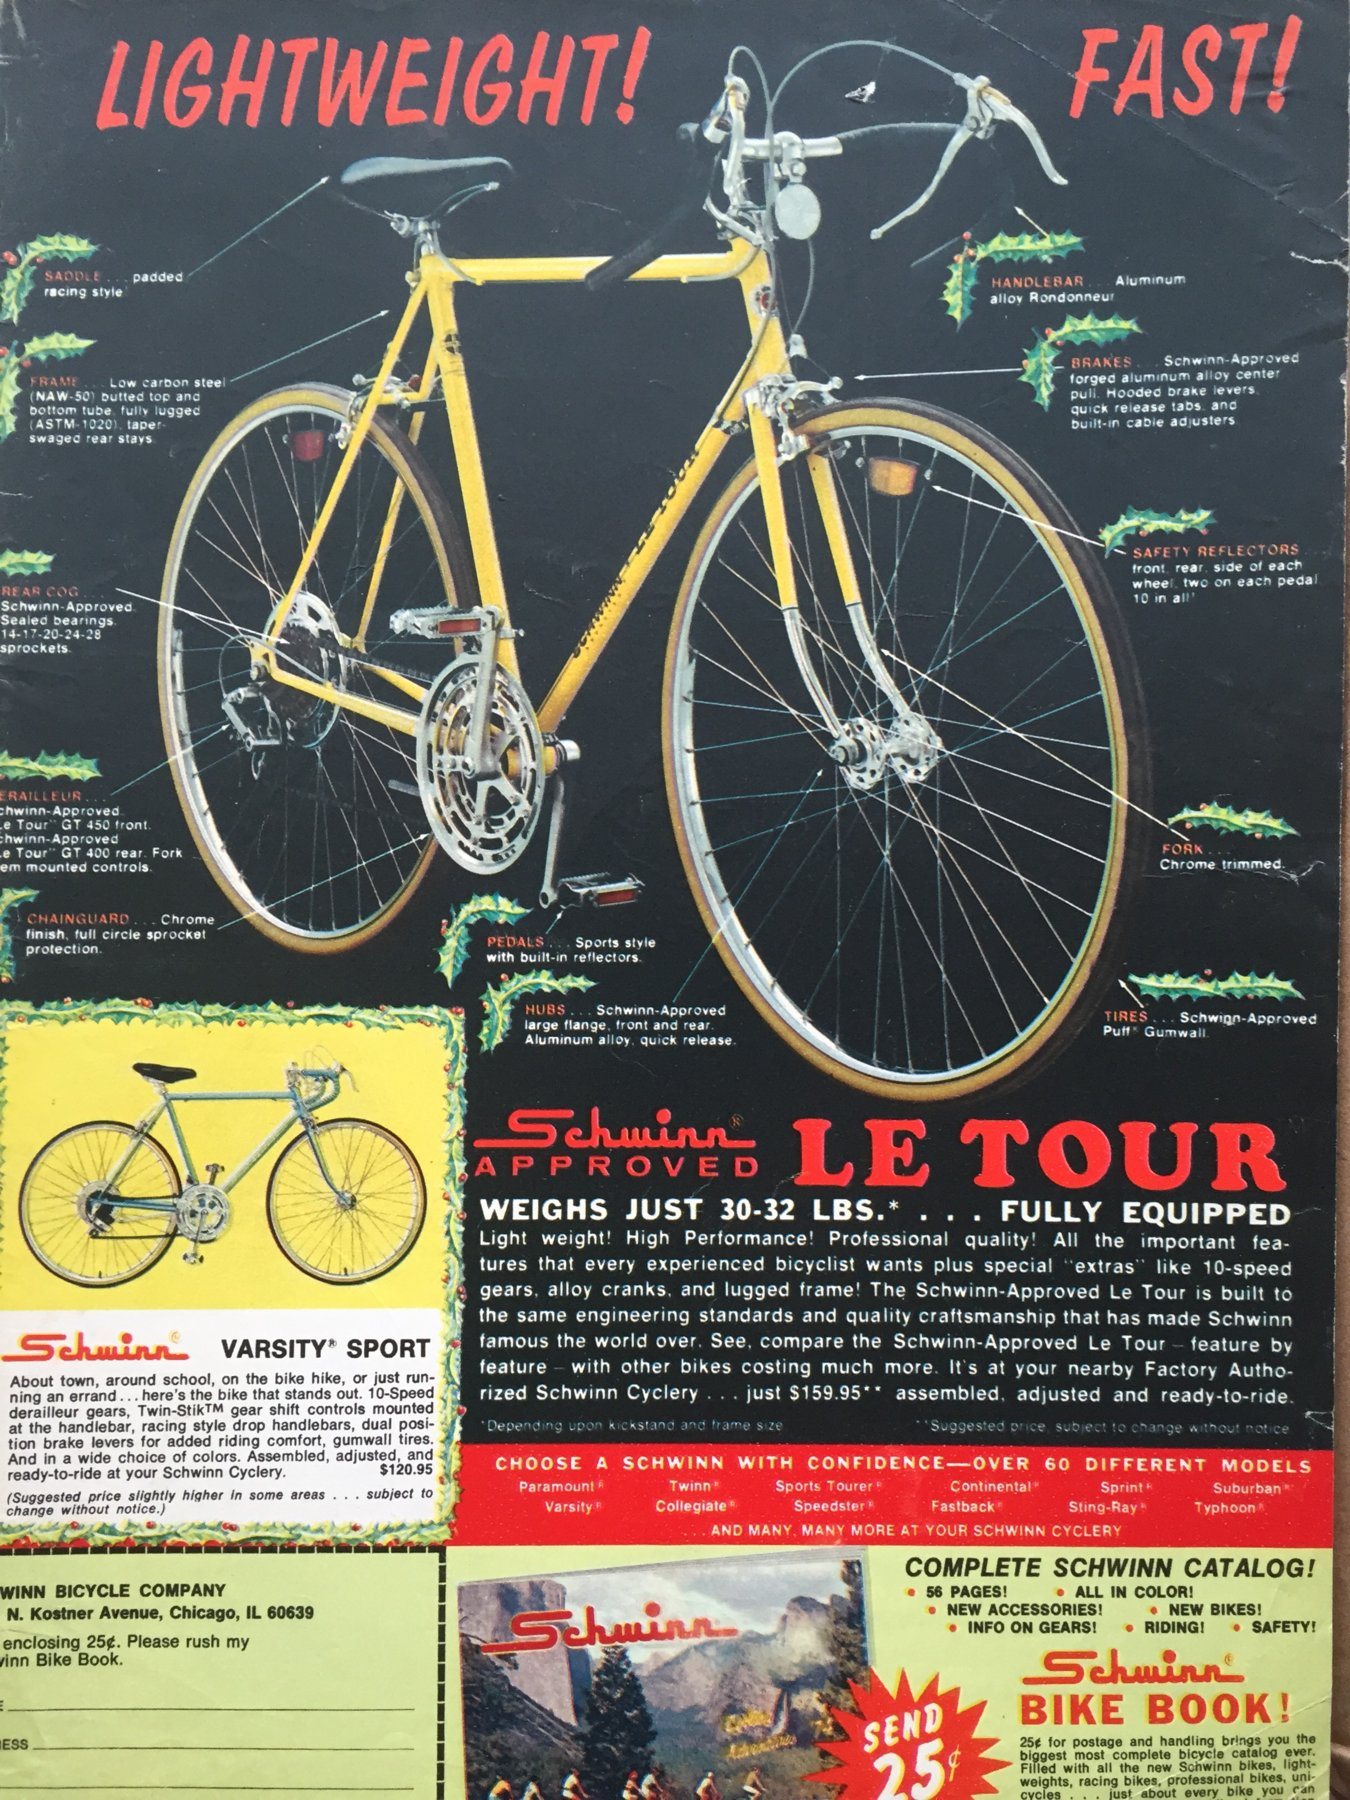 Lightweight Schwinn Ads | The Classic and Antique Bicycle